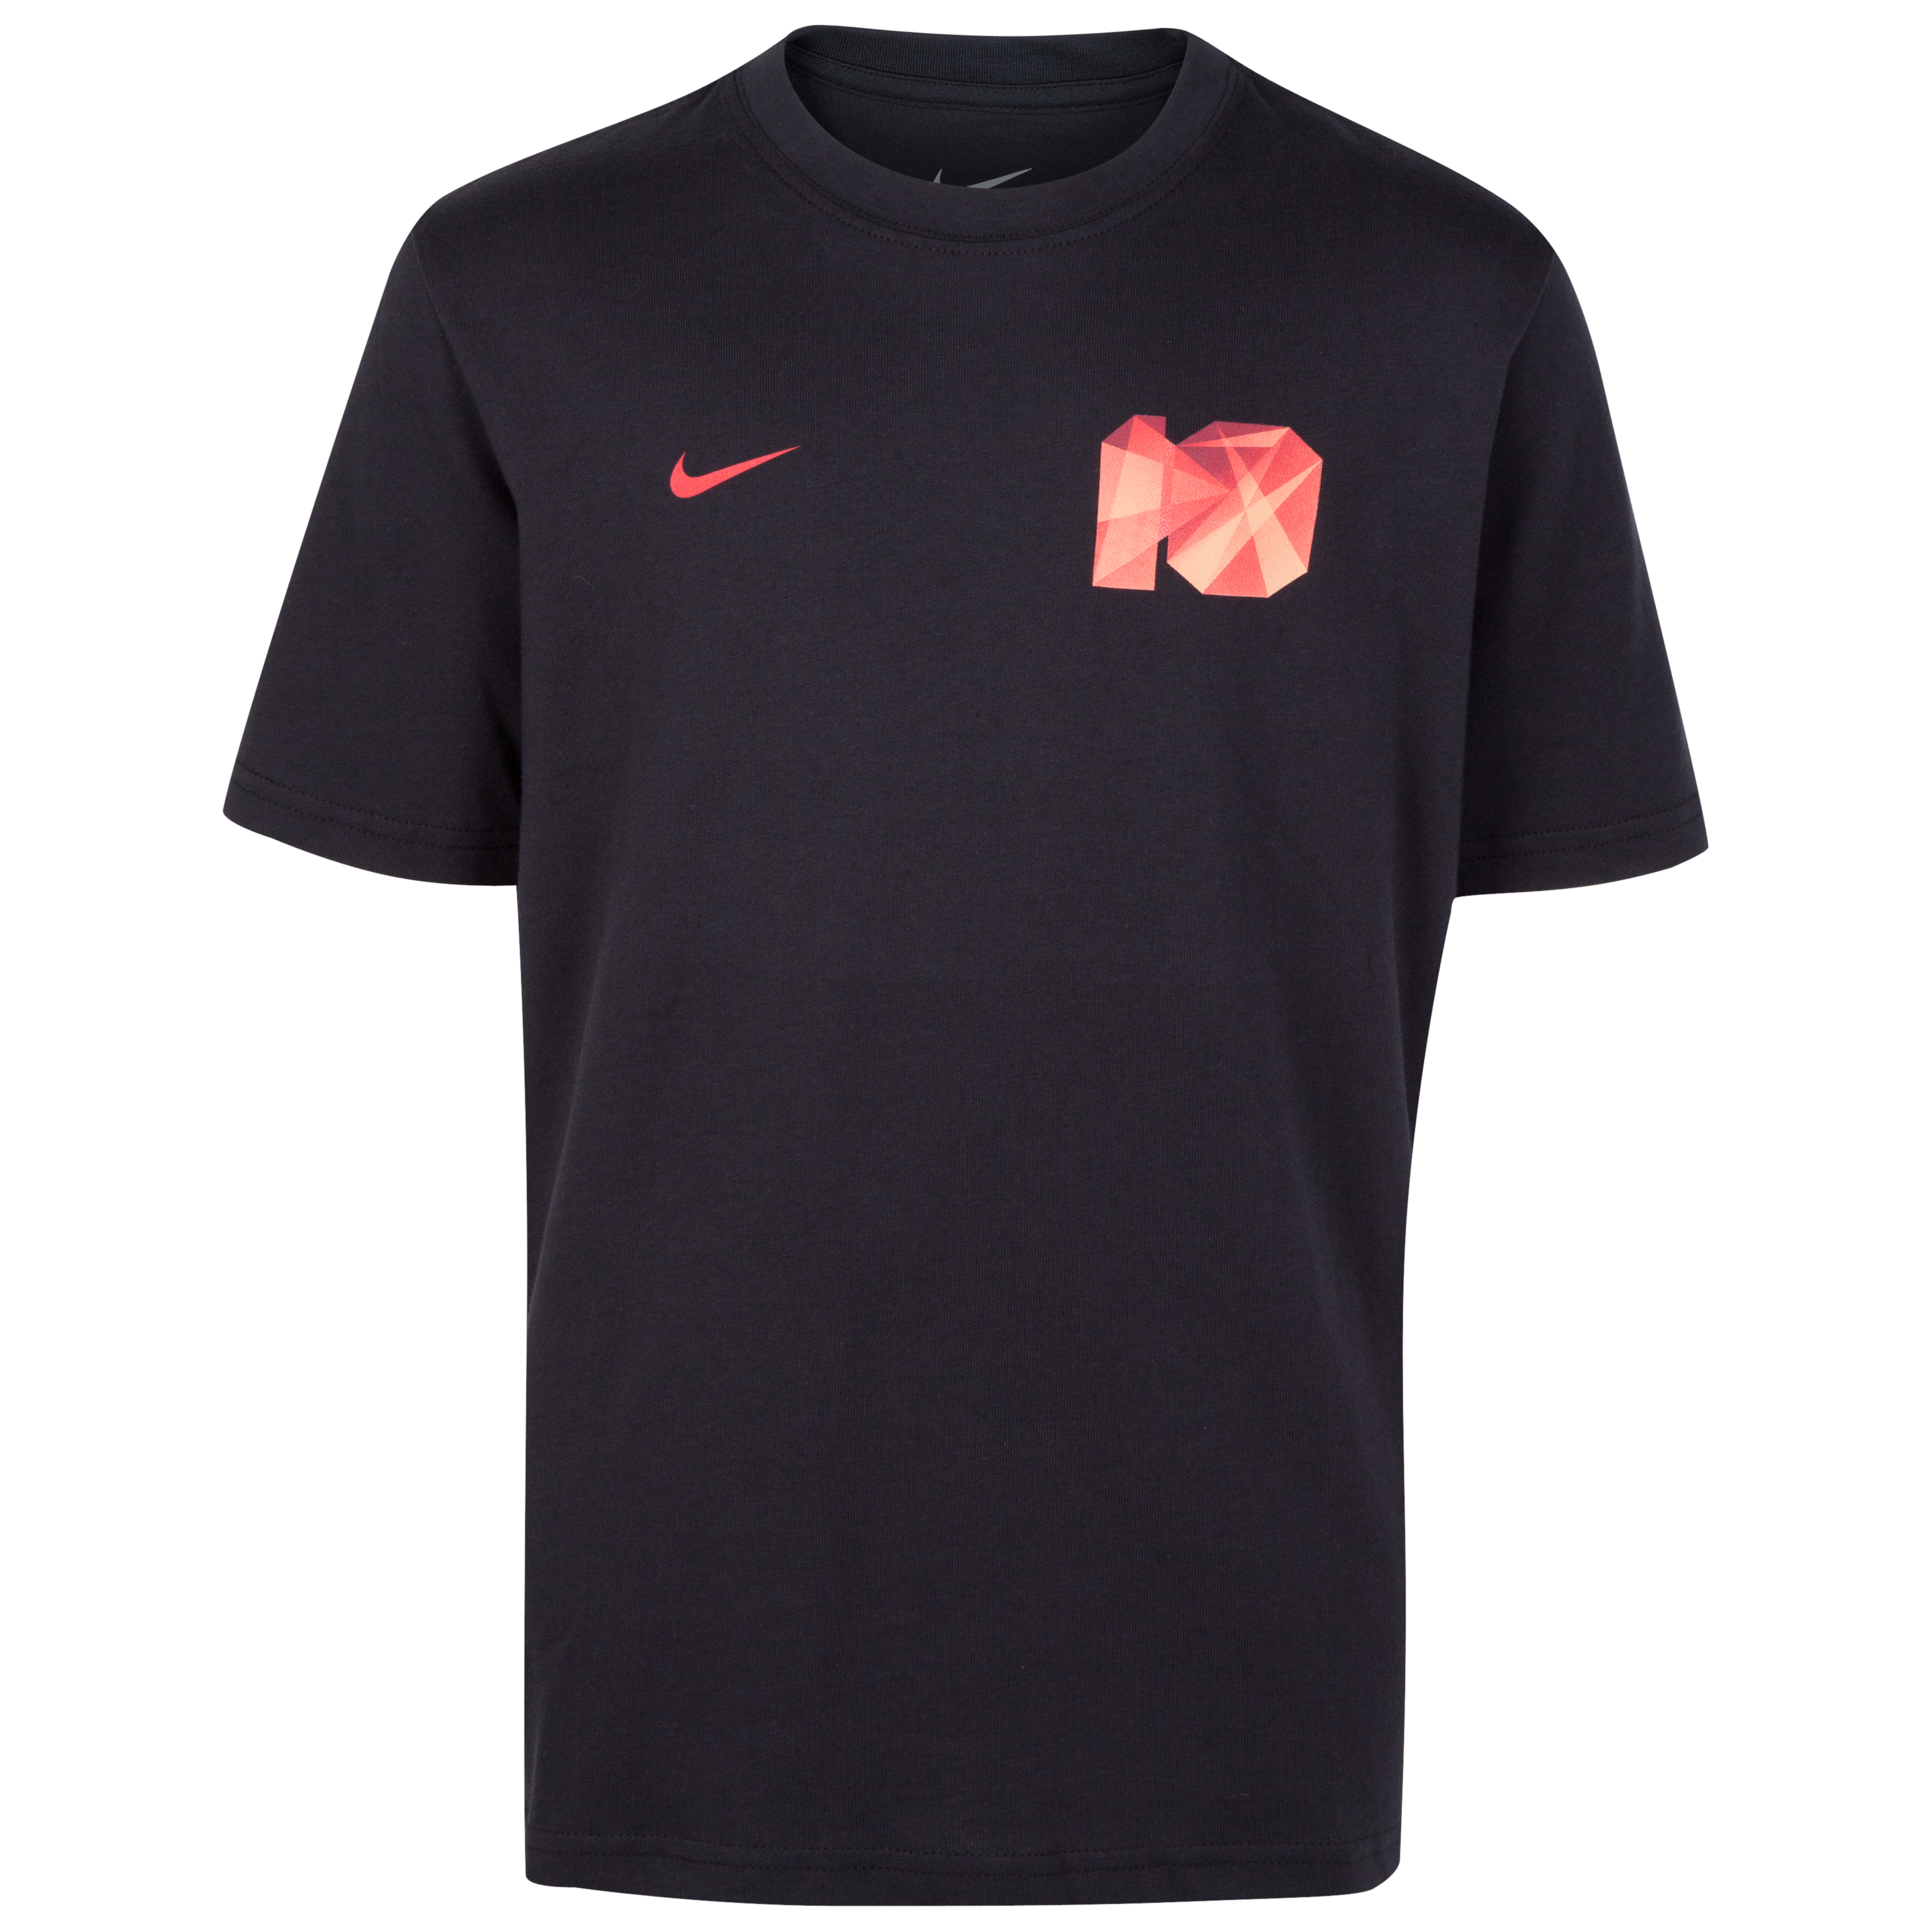 Nike Rooney Core Plus T-Shirt - Black - Kids